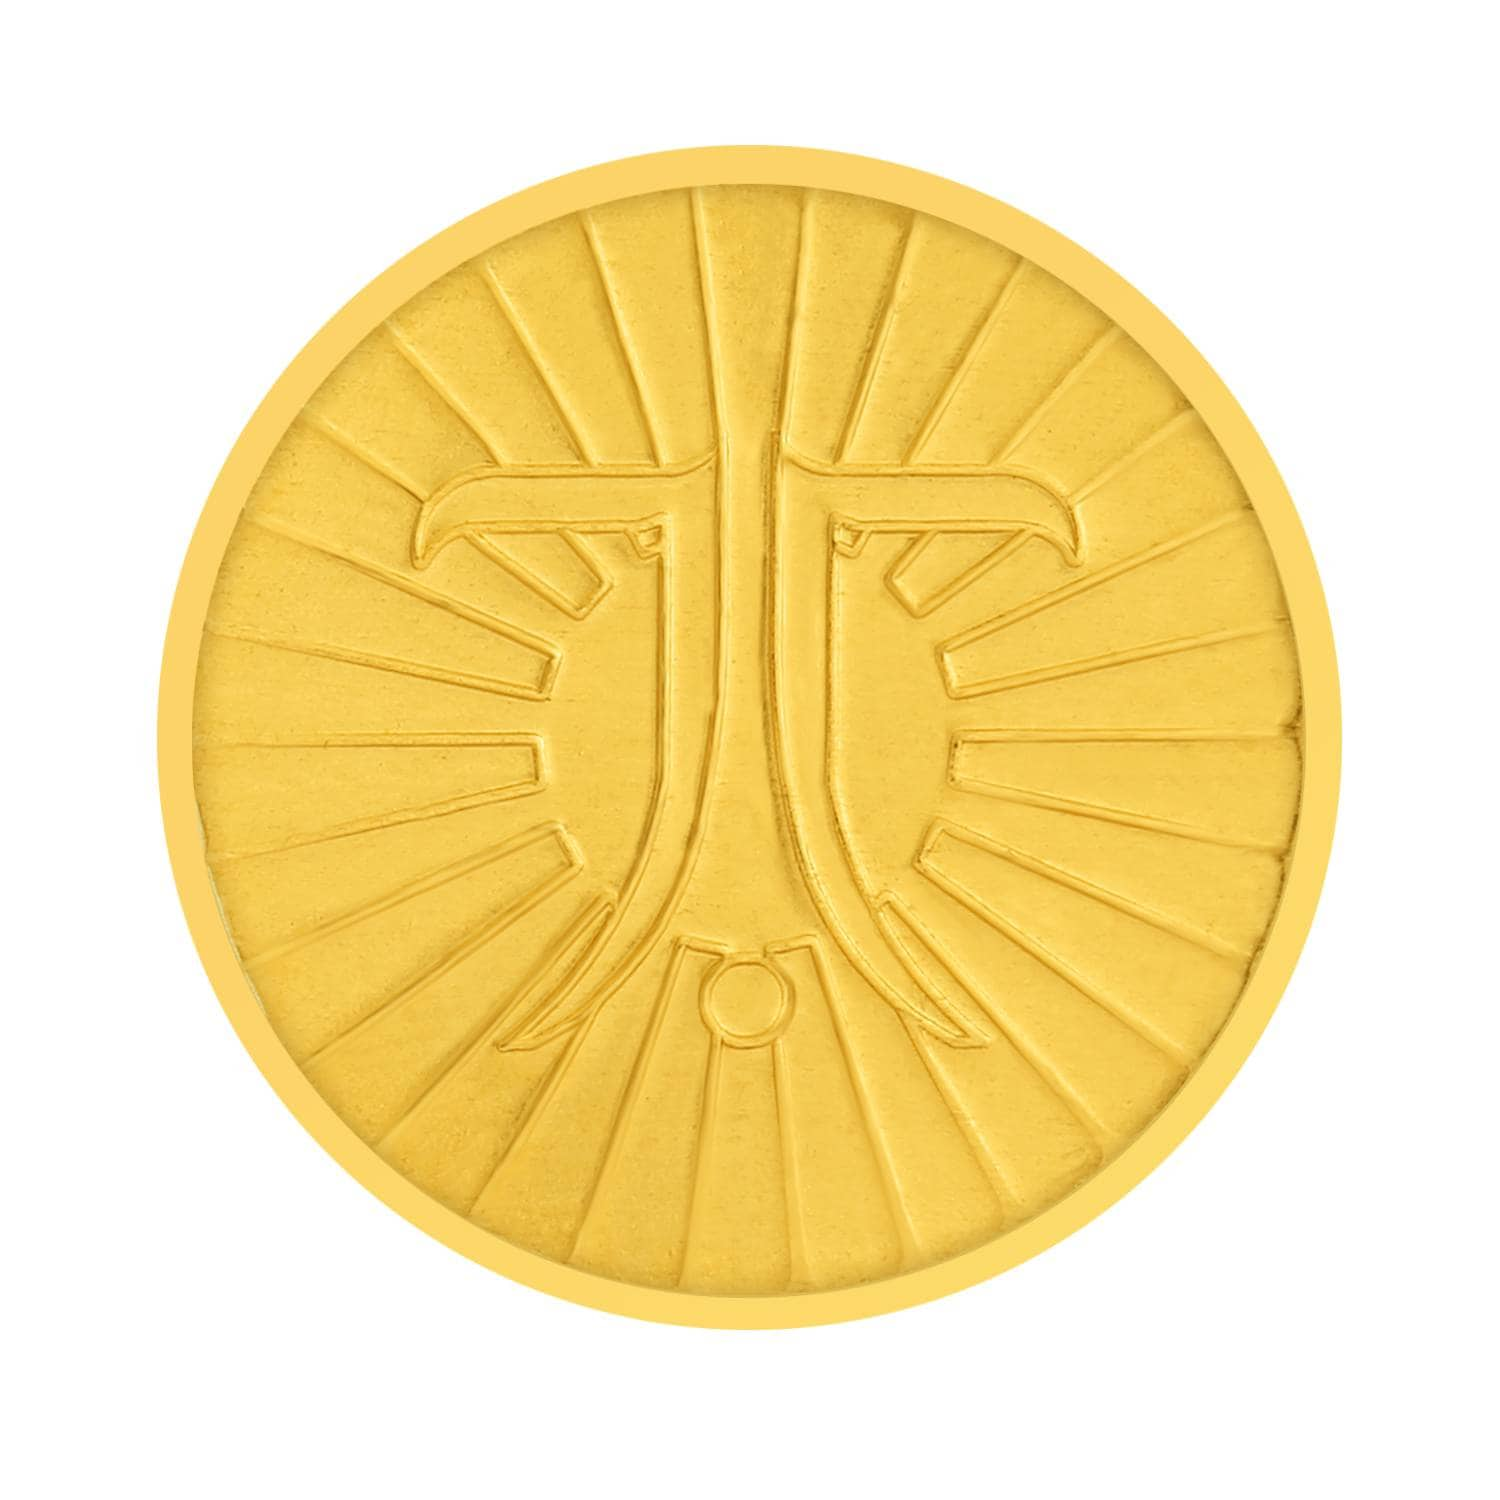 Buy Tanishq 24kt 10 gram Gold Coin At Best Price Online ...